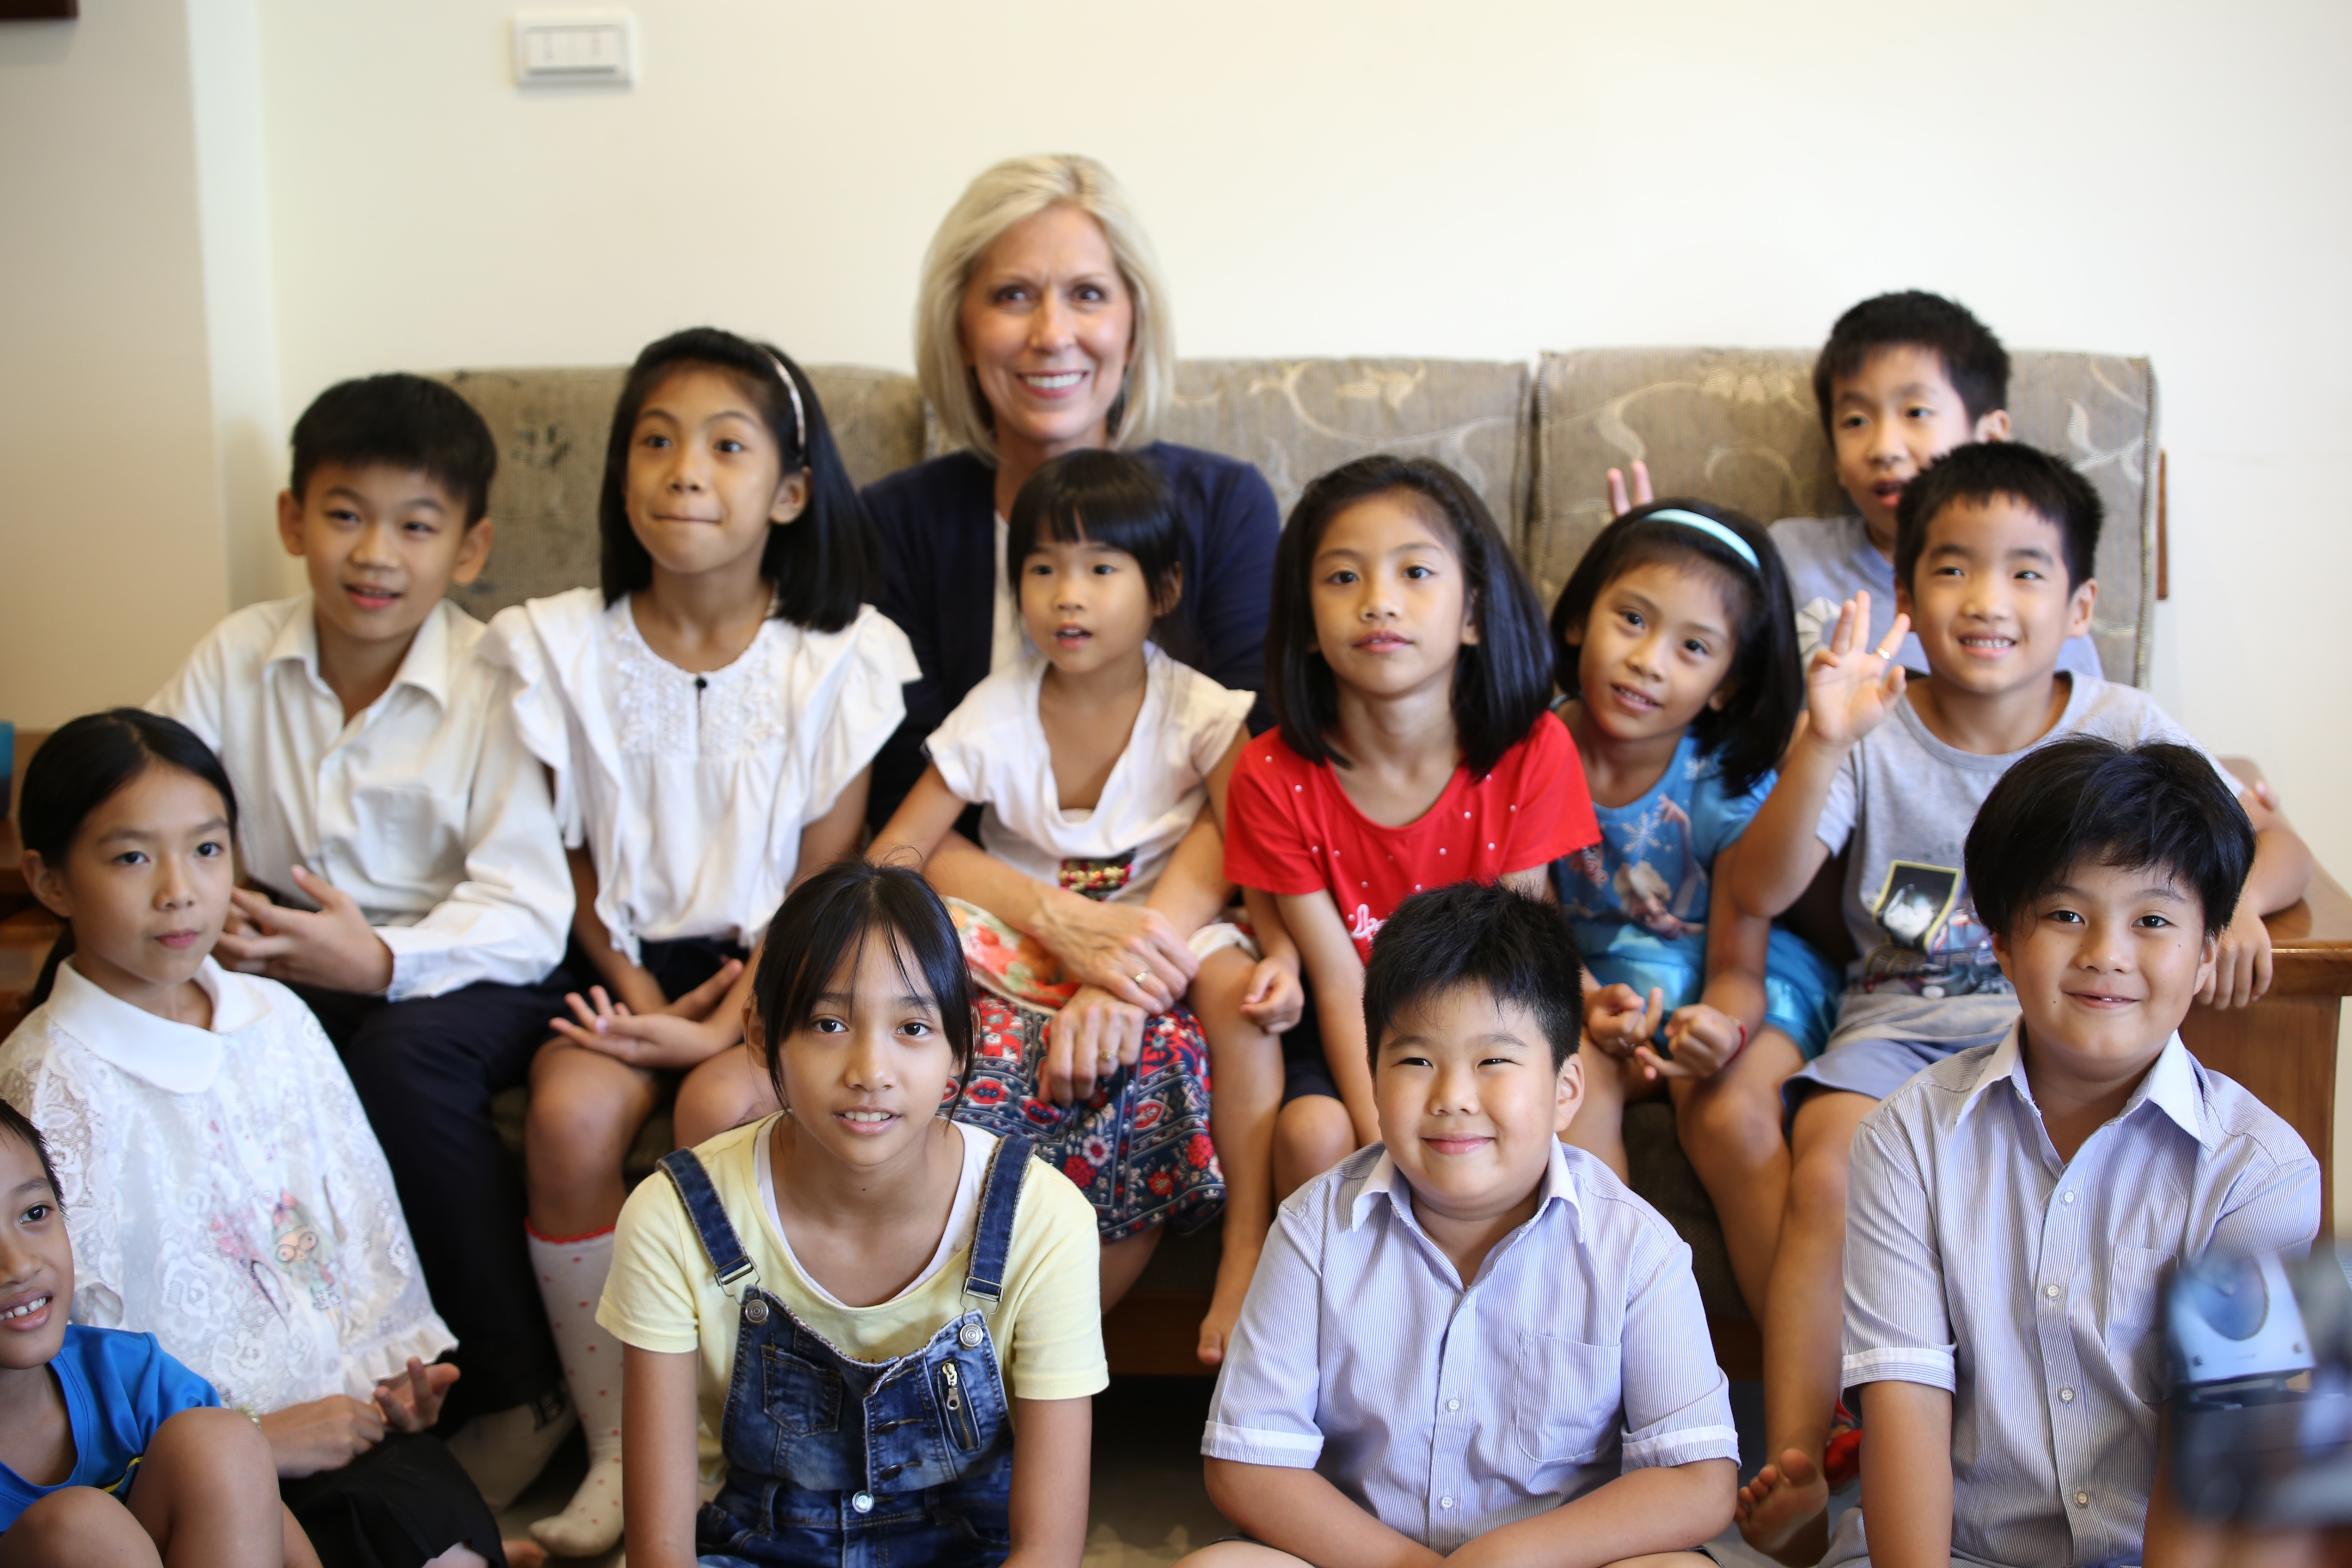 Sister Joy D. Jones, Primary general president, takes a photo with youth while visiting the home of members in Taiwan during a visit to the Asia Area from Aug. 17 to 14, 2019.